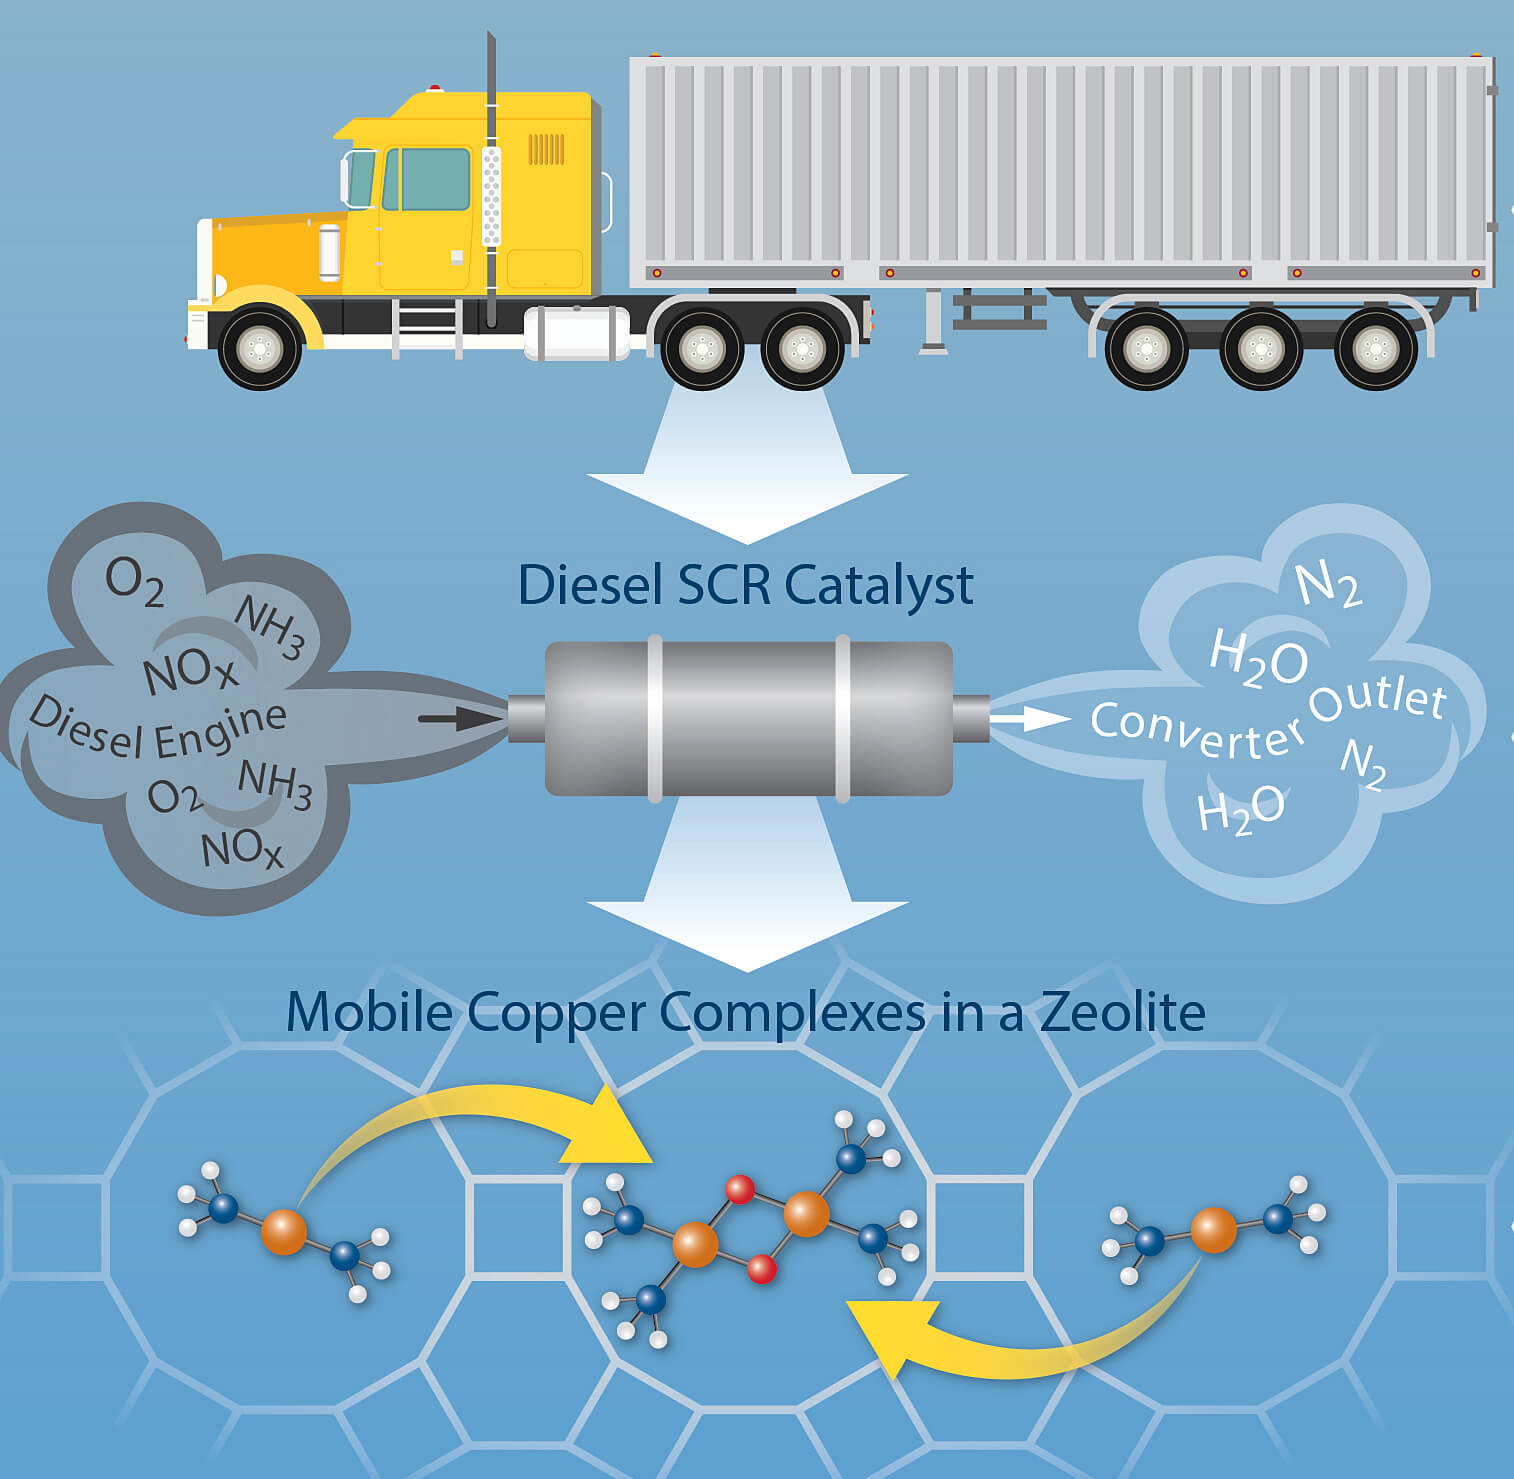 Discovery Could Lead To New Catalyst Design Reduce Nitrogen Train Diesel Engine Diagram This Depicts A Reaction Mechanism That Be Used Improve Designs For Pollution Control Systems Exhaust